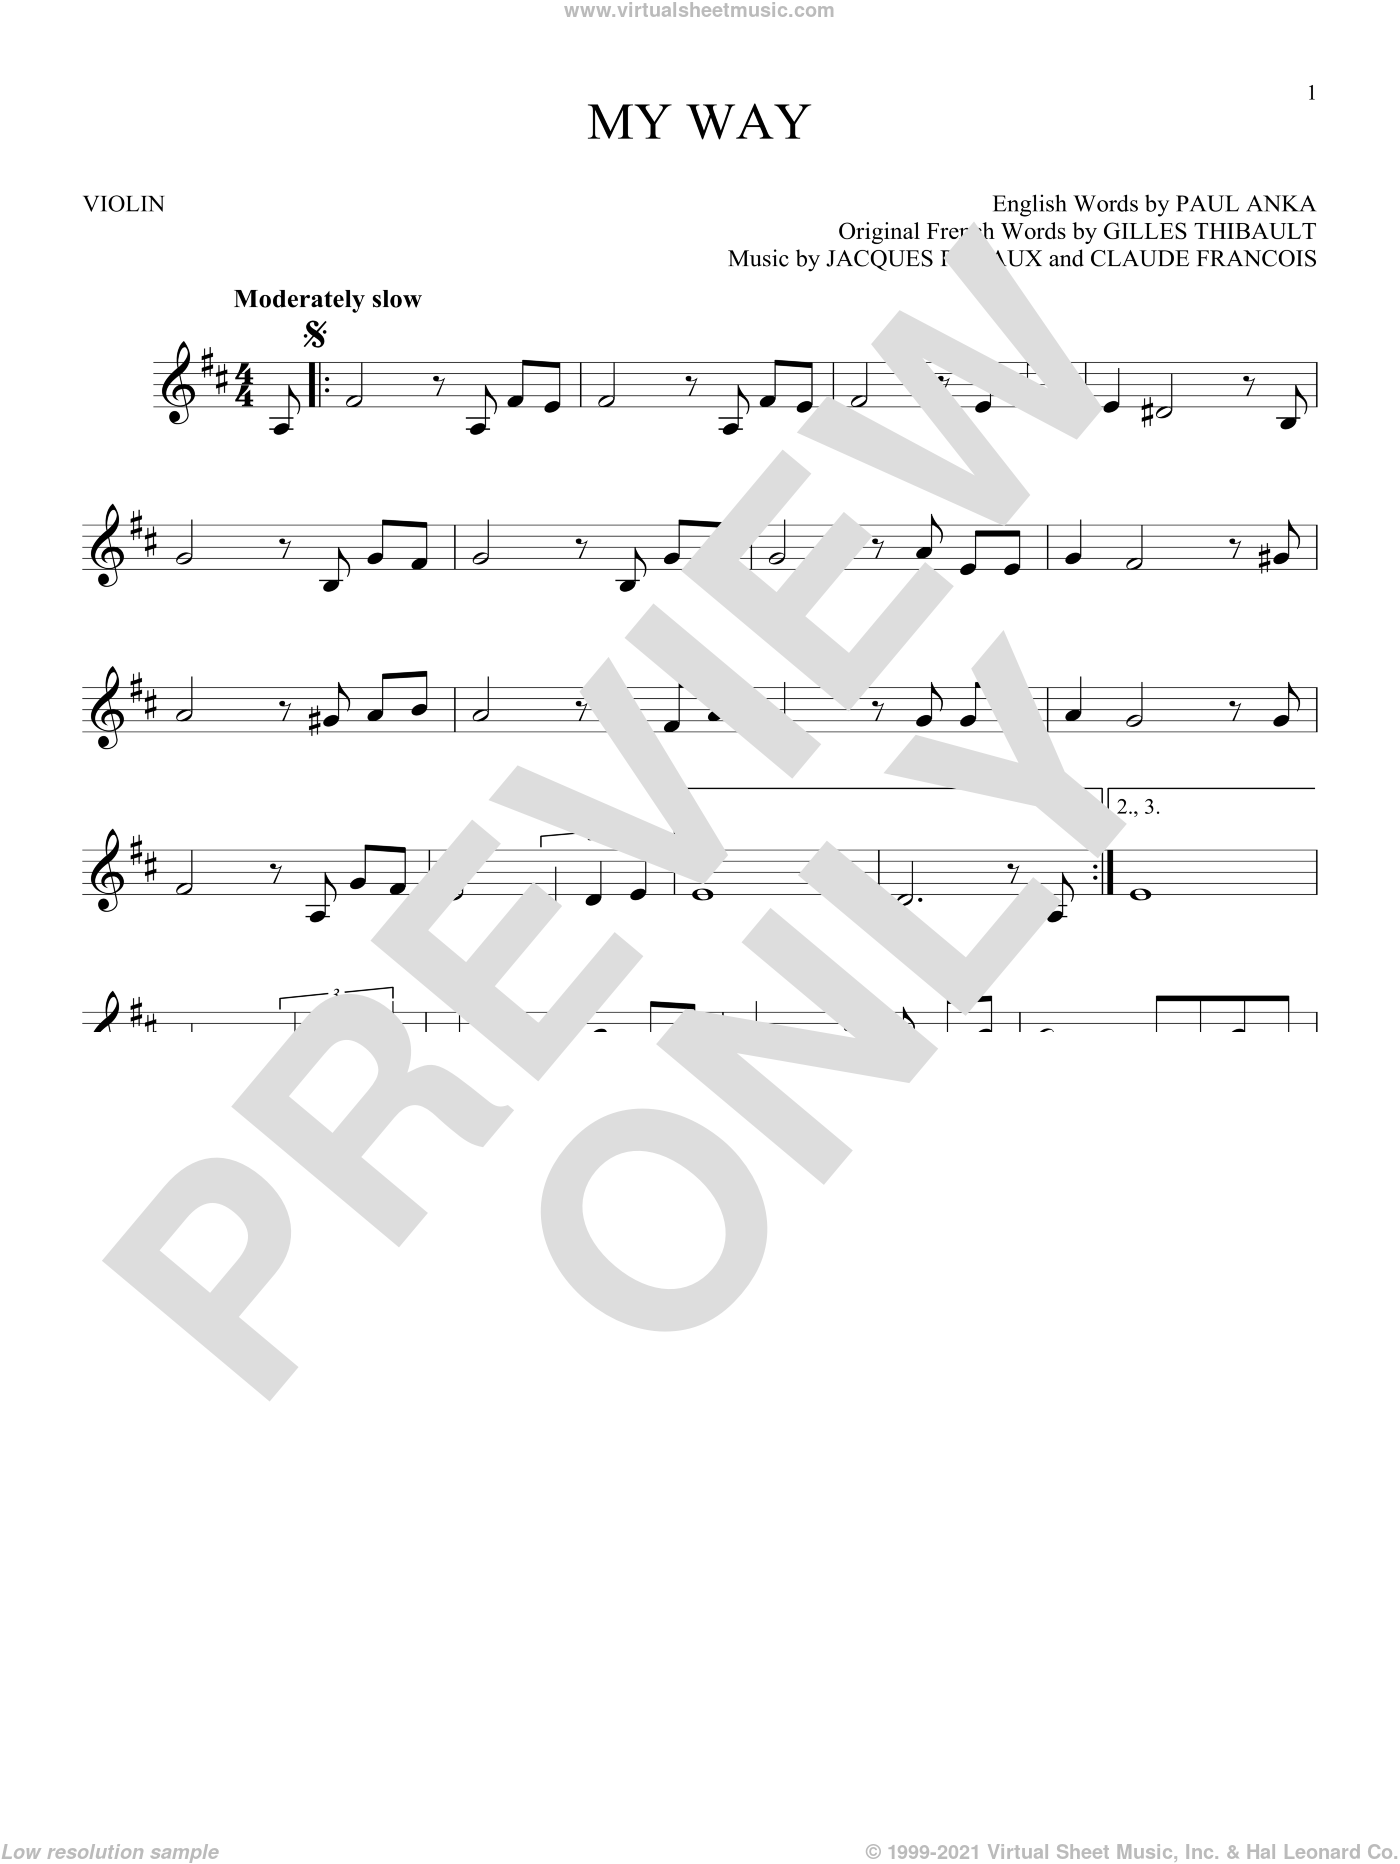 My Way sheet music for violin solo by Frank Sinatra, Elvis Presley, Claude Francois, Gilles Thibault, Jacques Revaux and Paul Anka, intermediate skill level